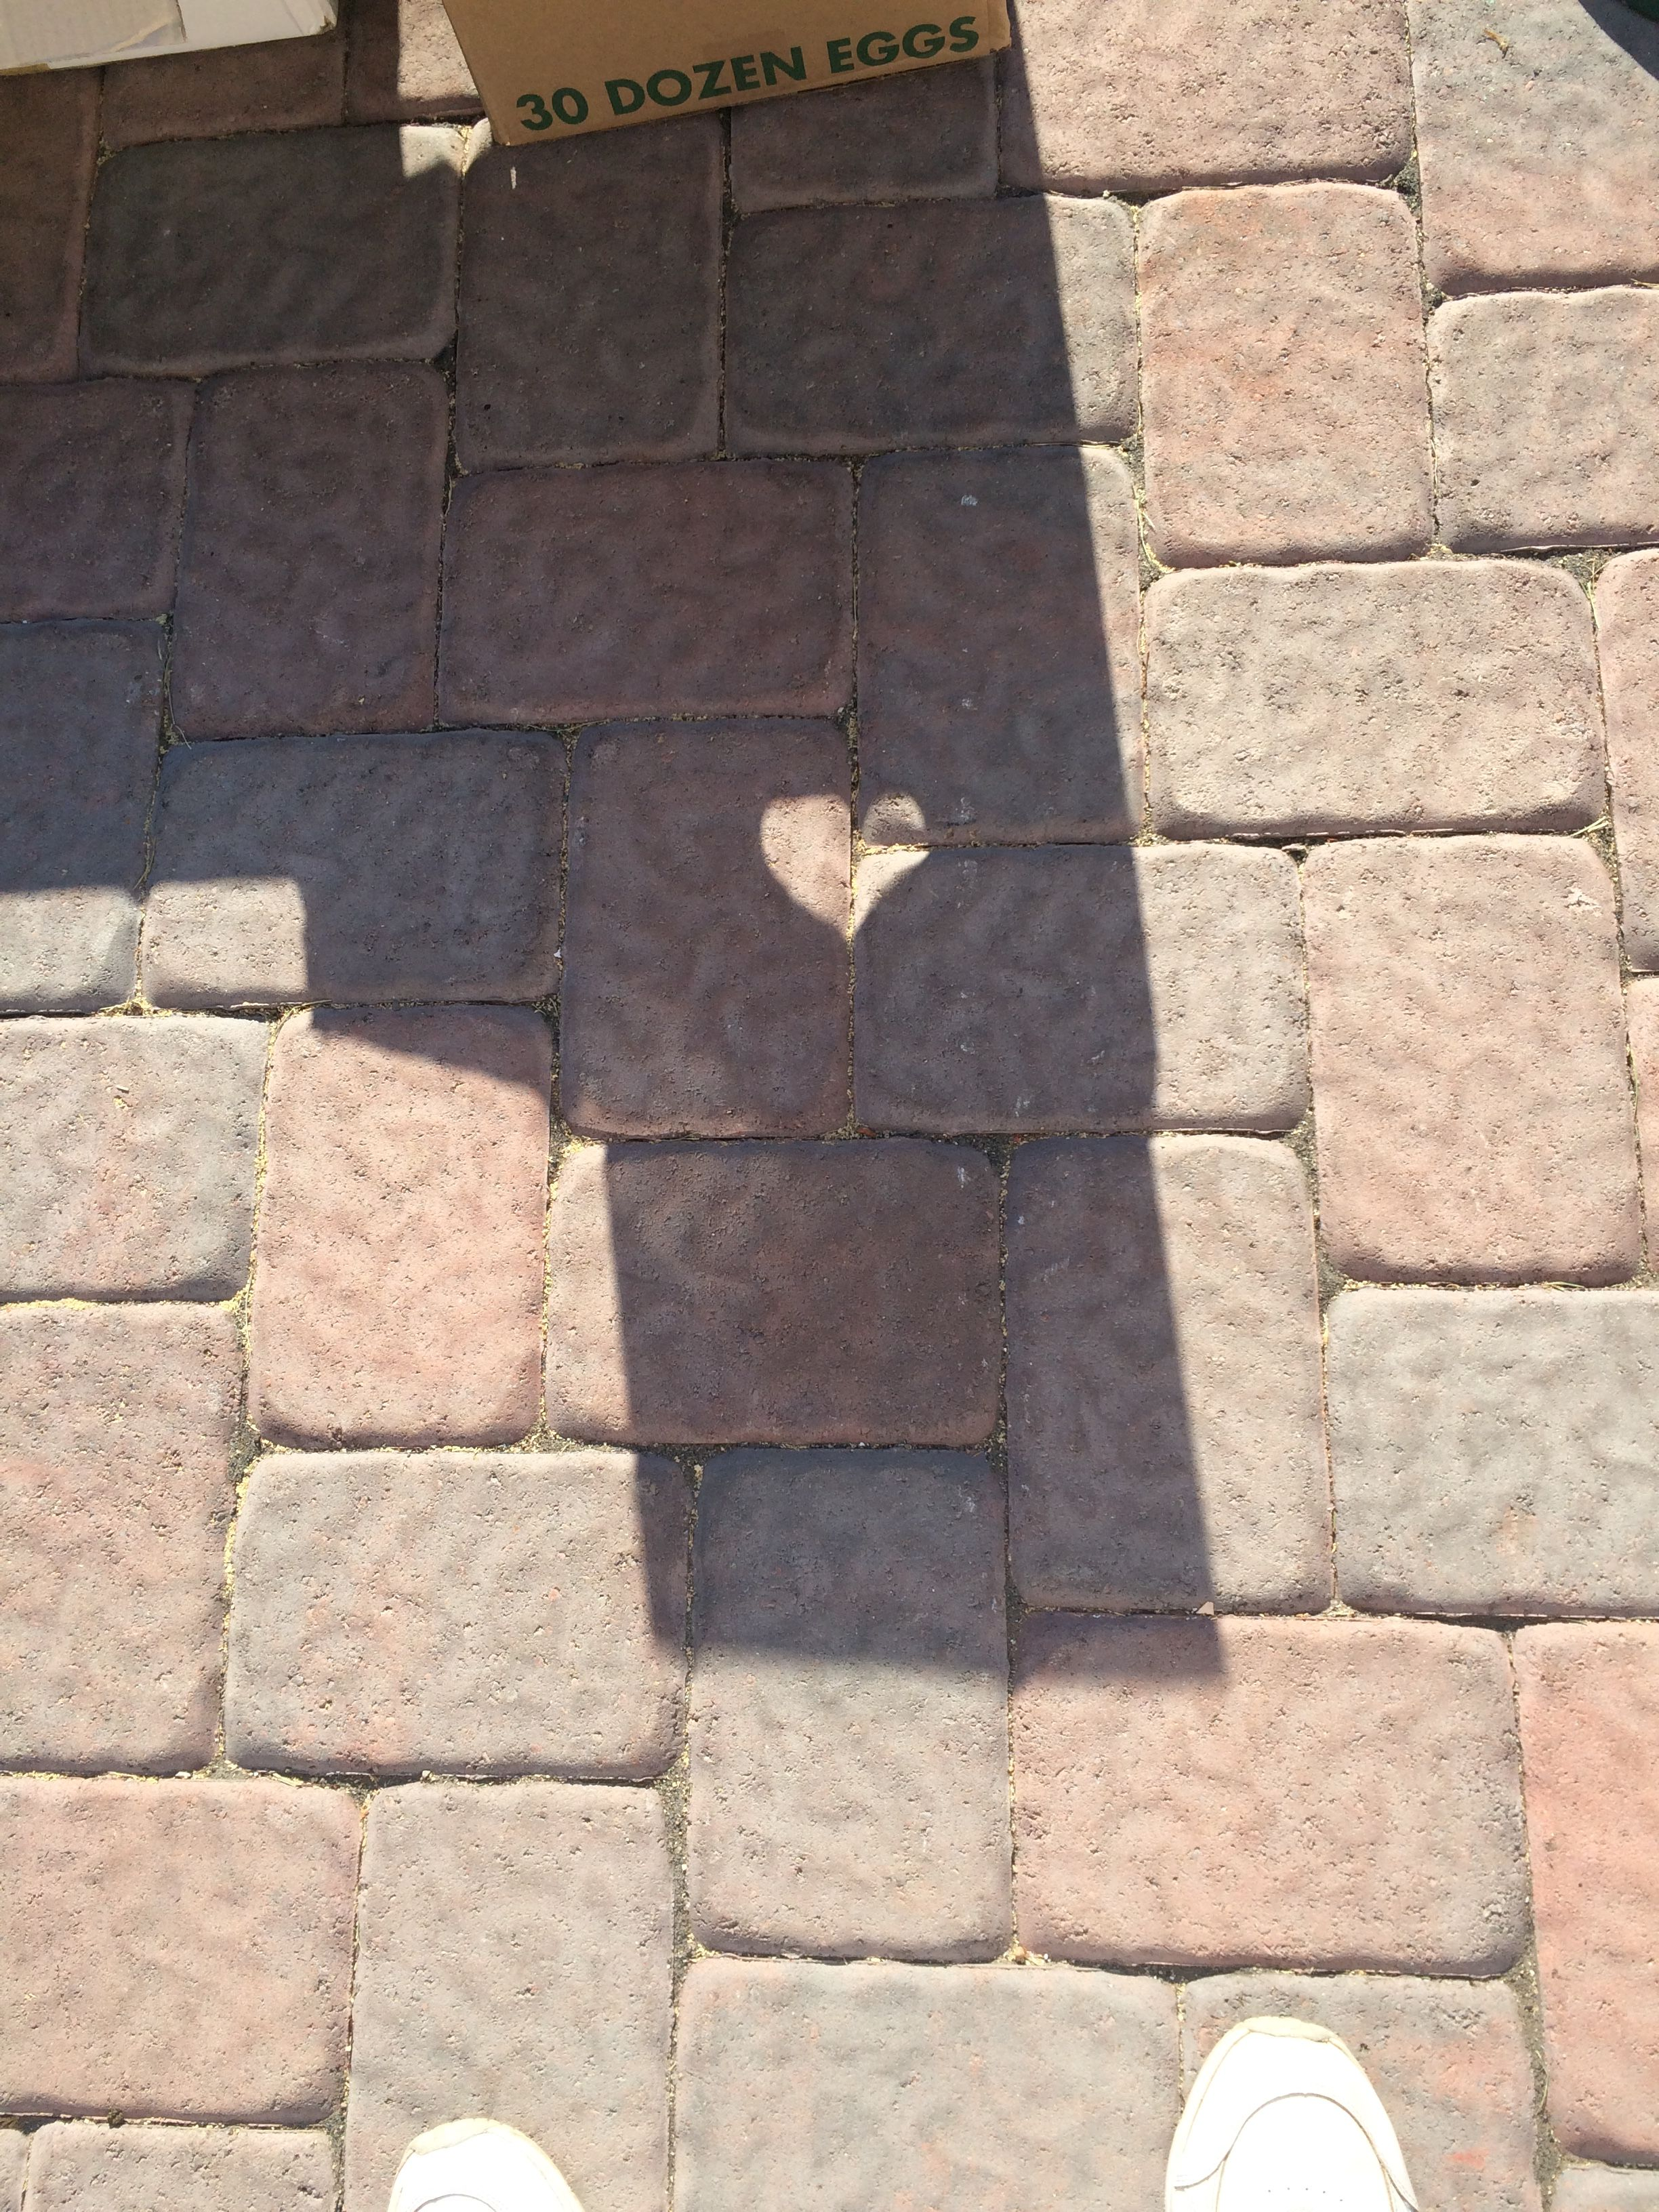 Heart found in the shade of cardboard boxes on a driveway during our garage sale, Saturday, Sept. 19th., 2015